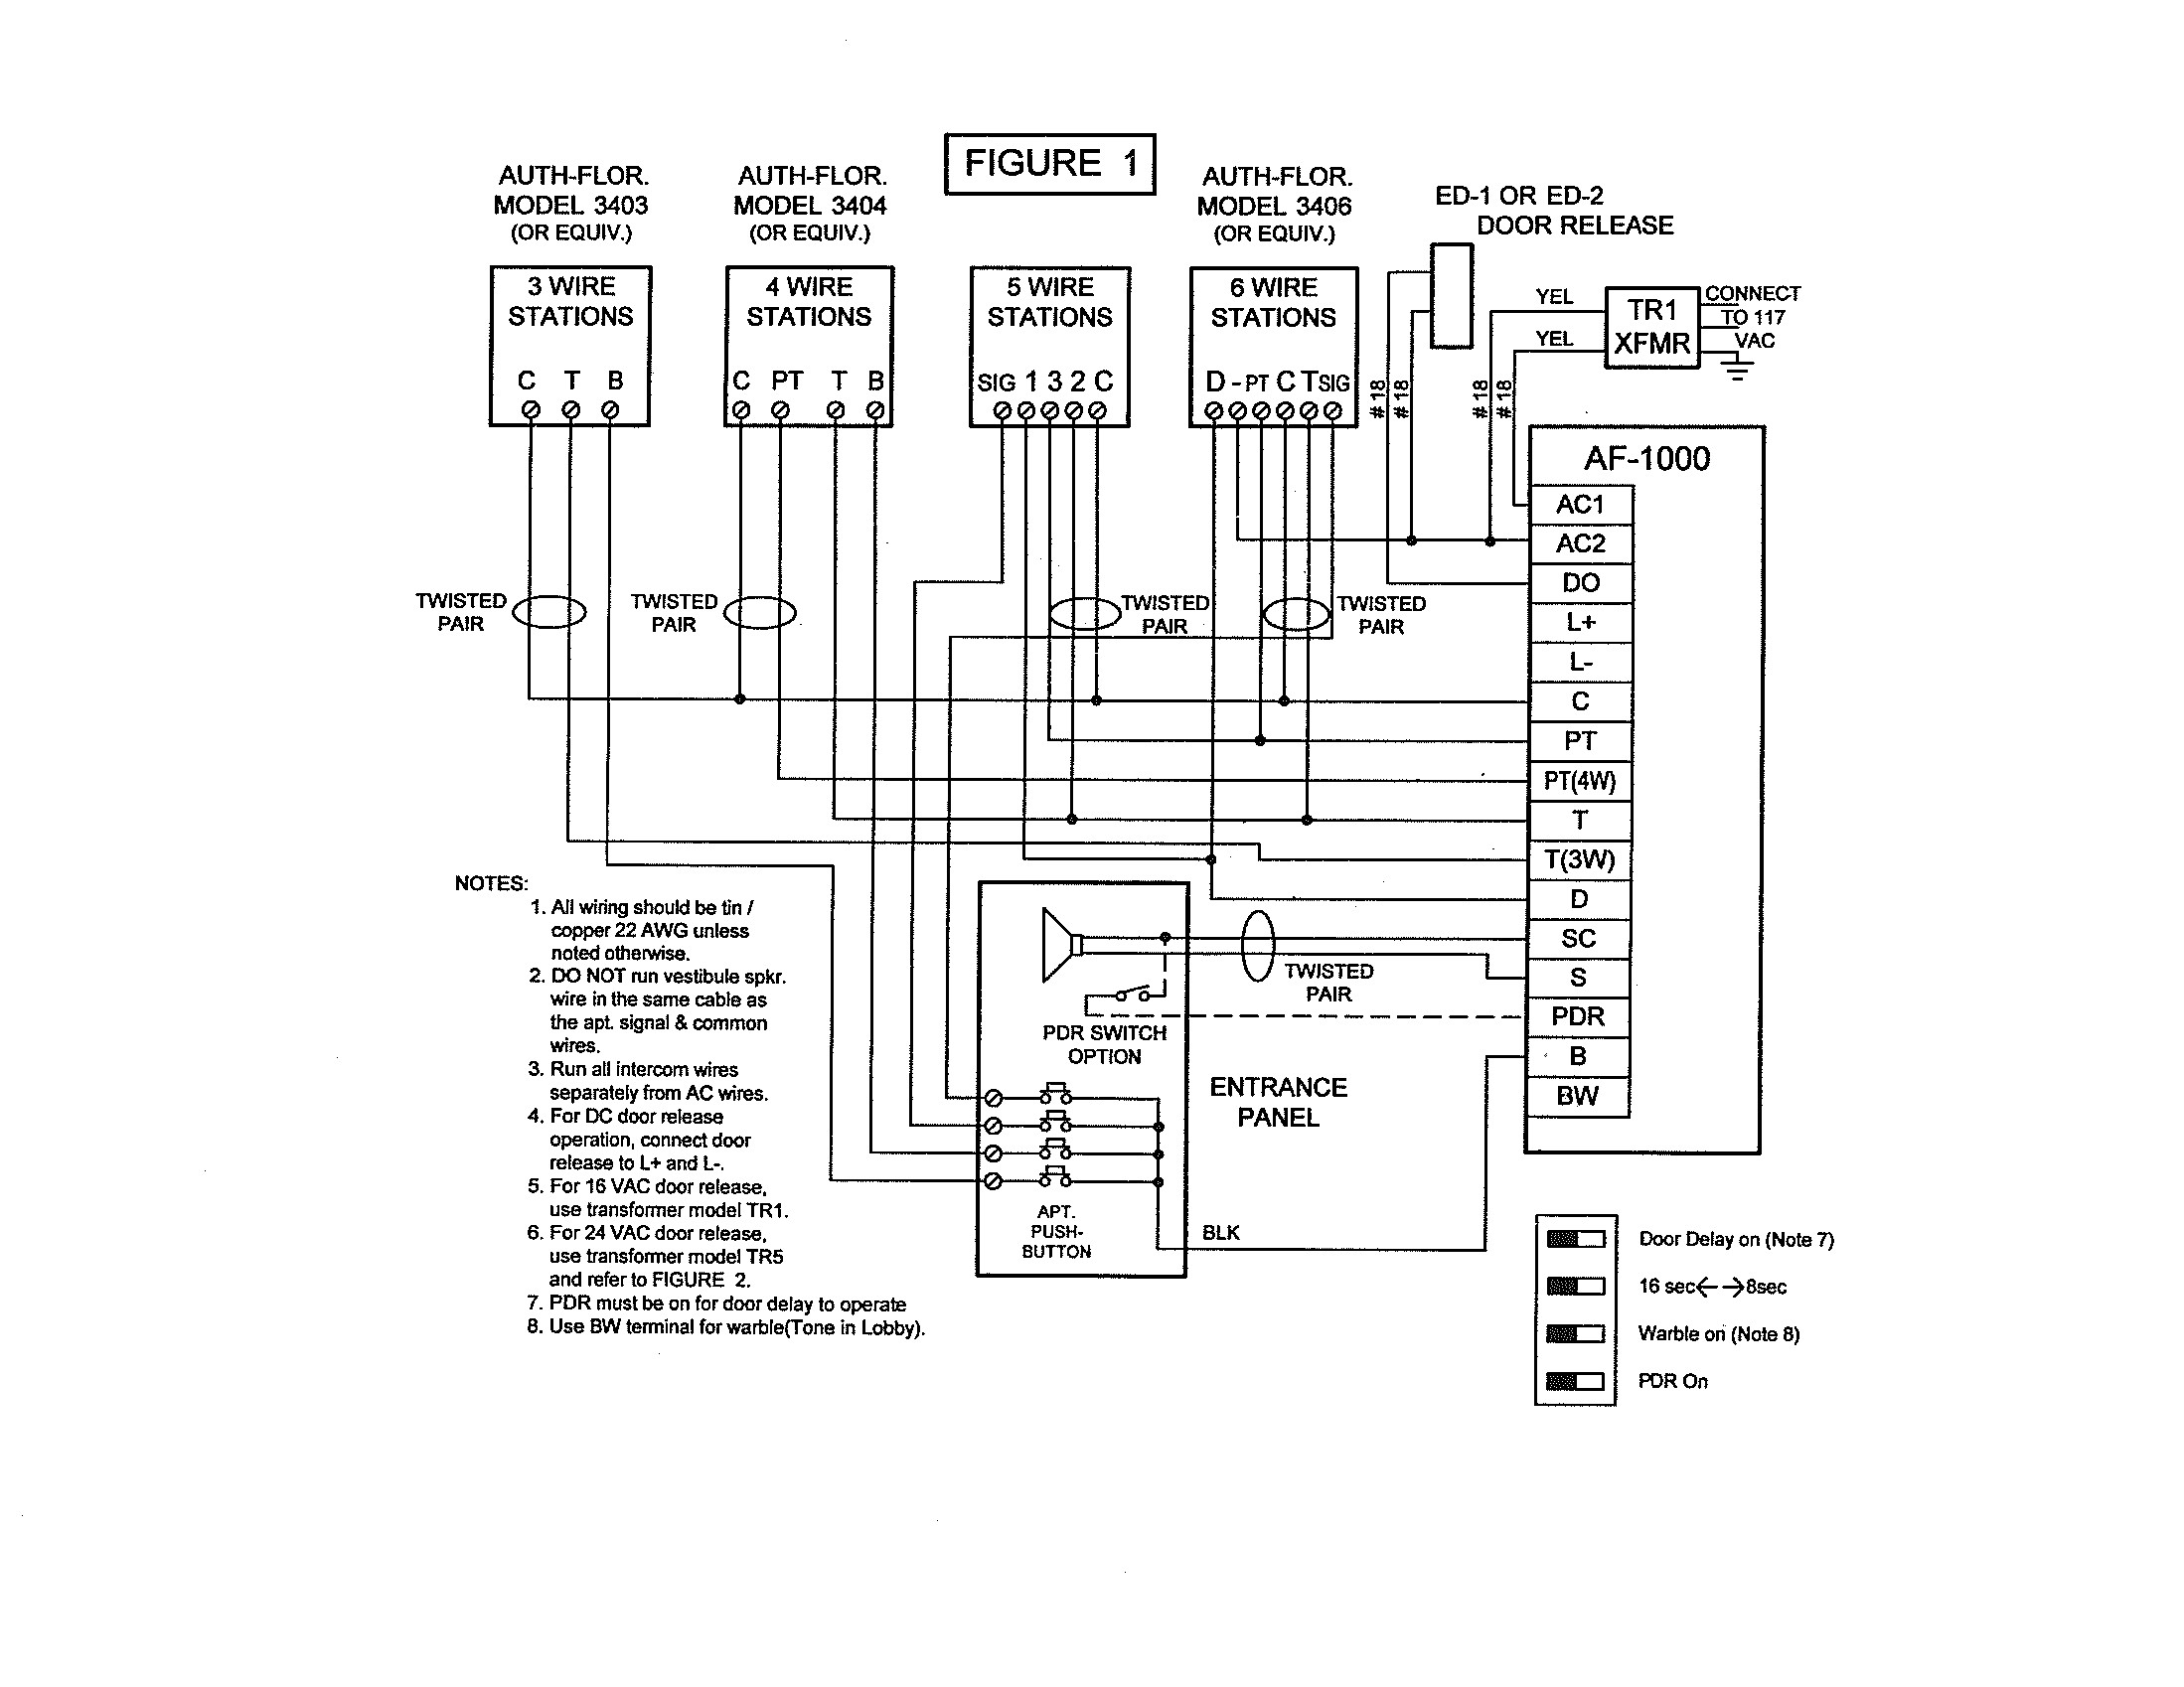 Pacific electronics af3600 af 3600 transfer relay unit wiring diagram asfbconference2016 Image collections